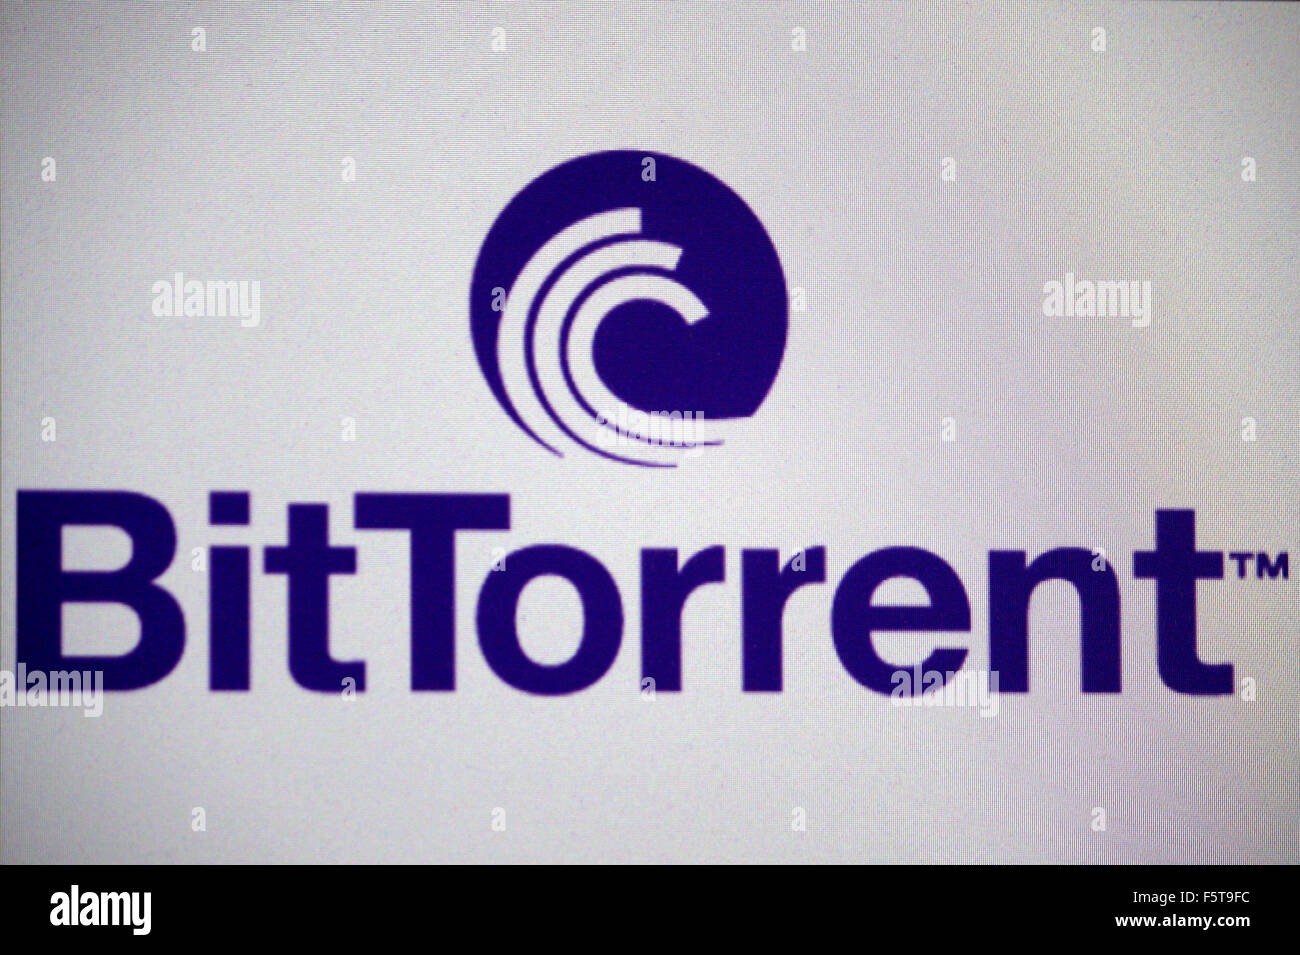 Markenname: 'Bit Torrent', Berlin. - Stock Image